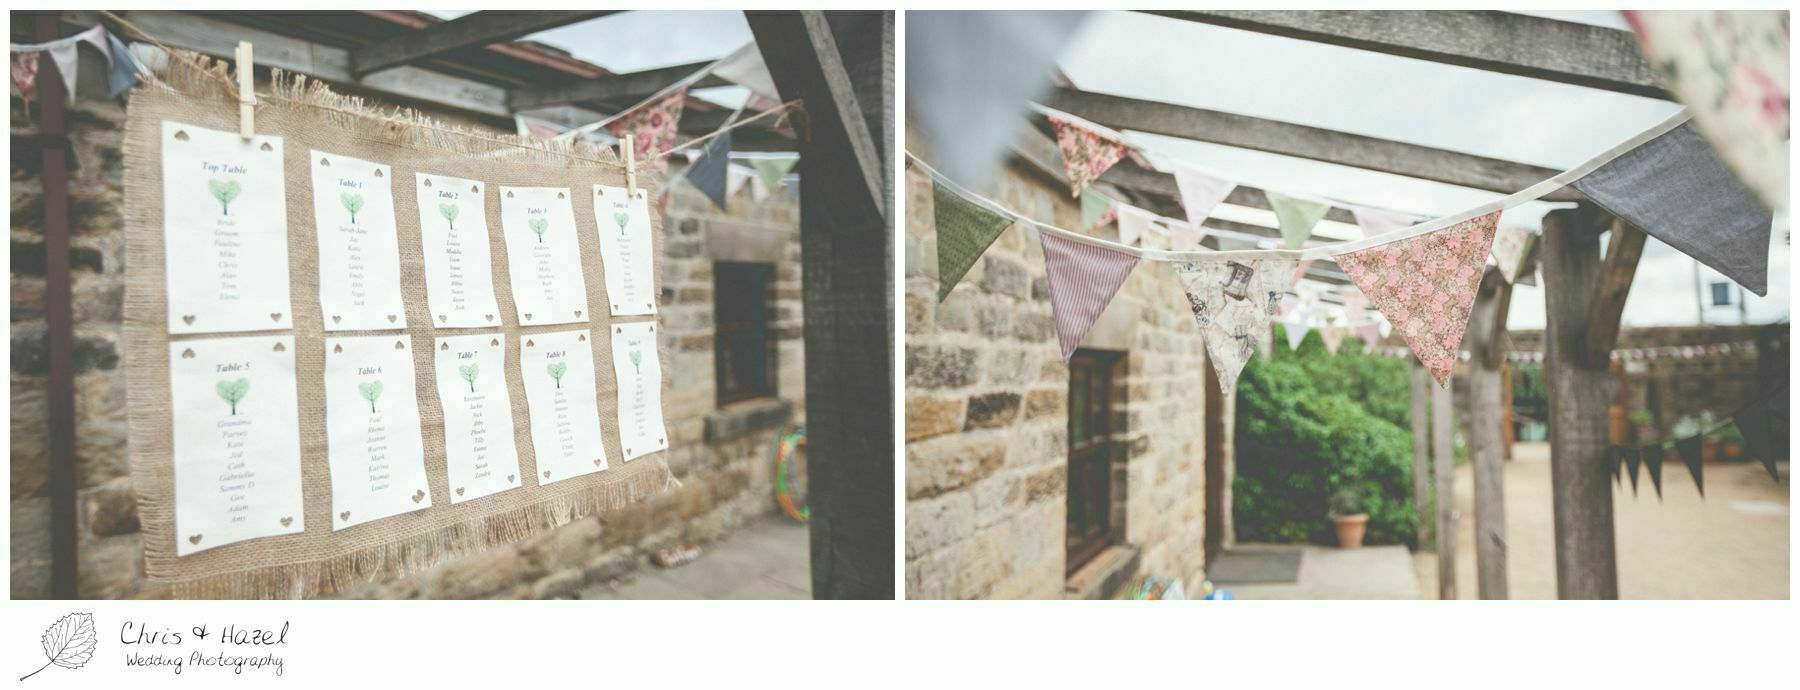 wedding bunting, alternative seating plan, hessian, eco wedding, love letters, wedding, Eccup Wedding Photographer, Lineham Farm, Wedding Photography Leeds, Chris and Hazel Wedding Photography, Richard Wyatt, Laura Kelly